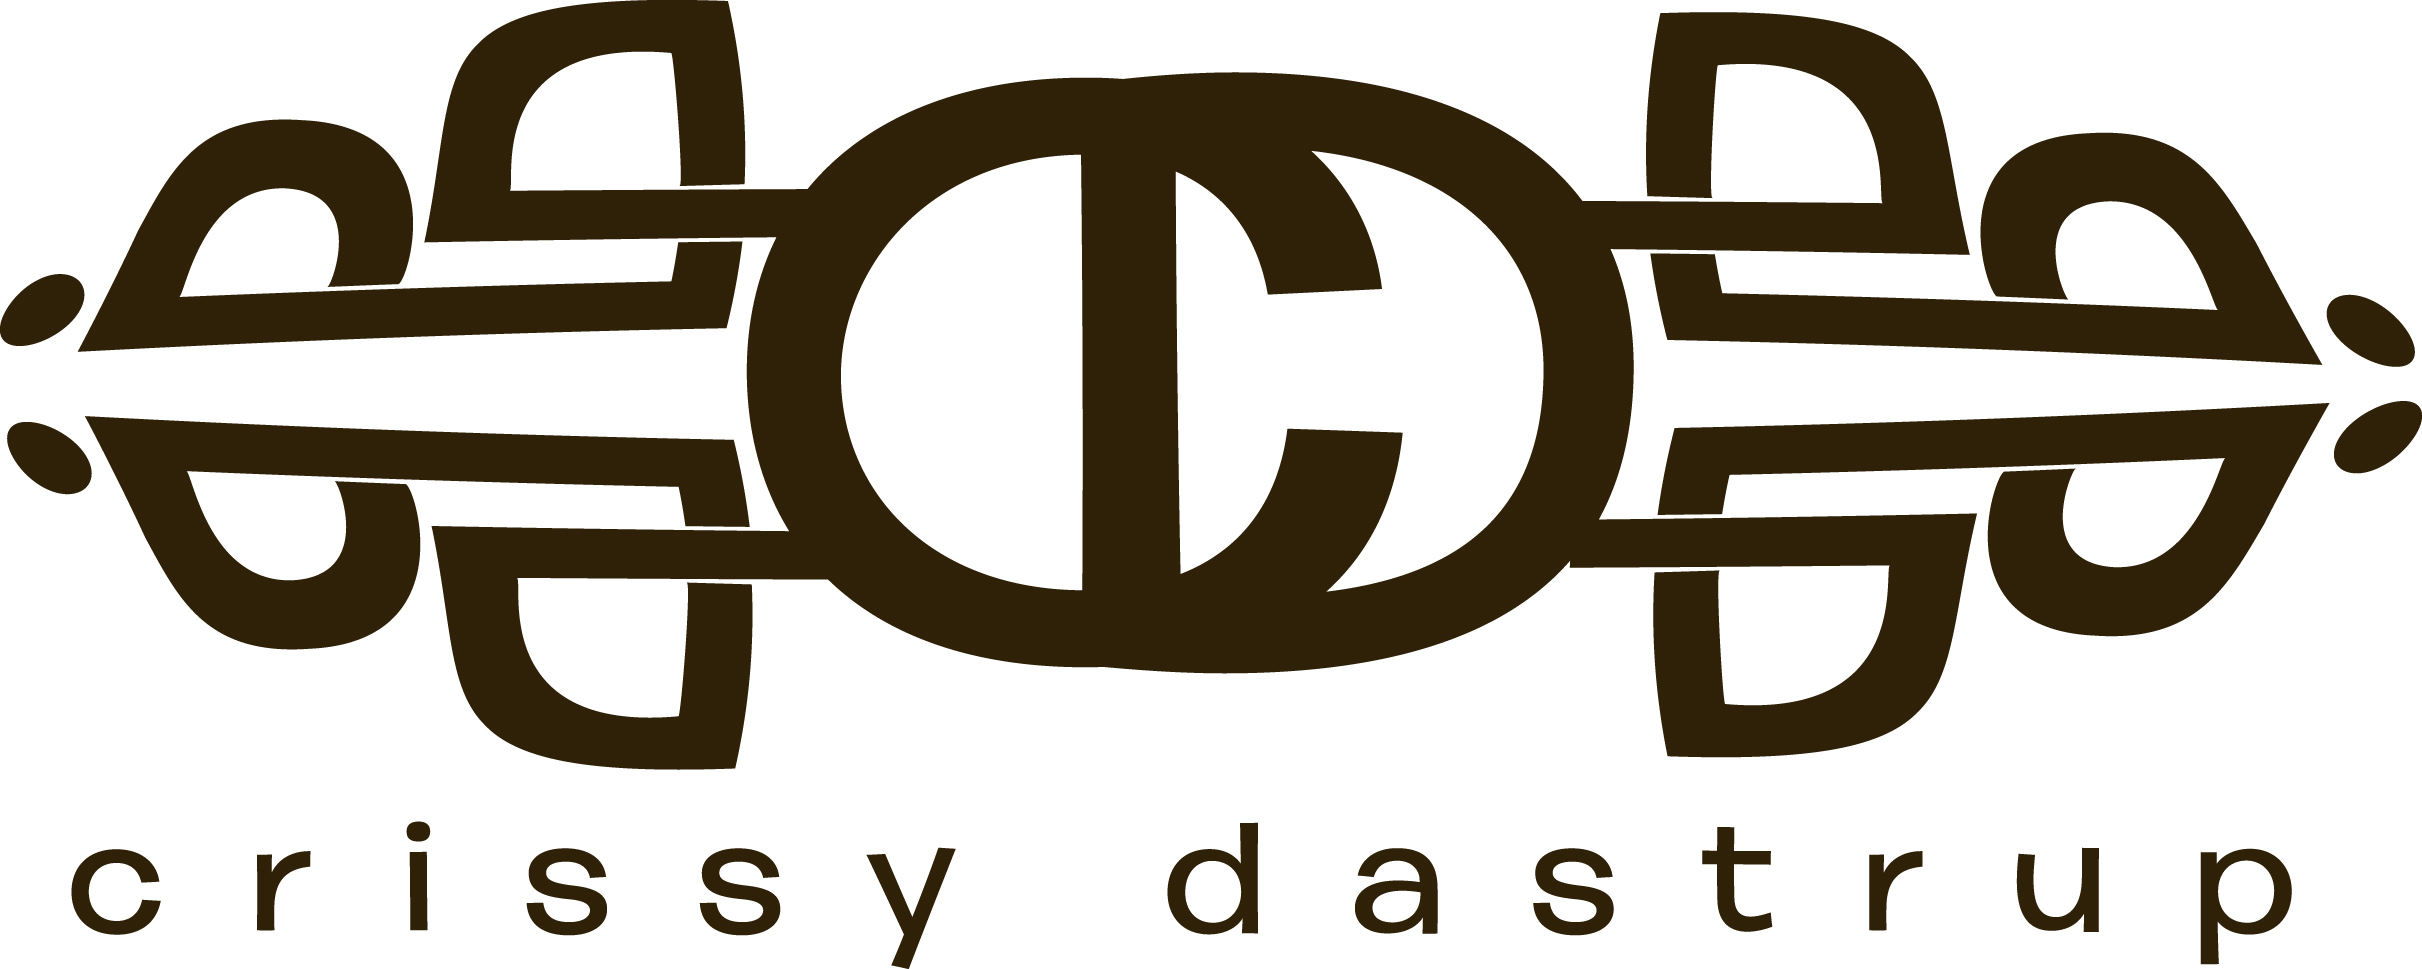 CD-logo dark brown.jpg